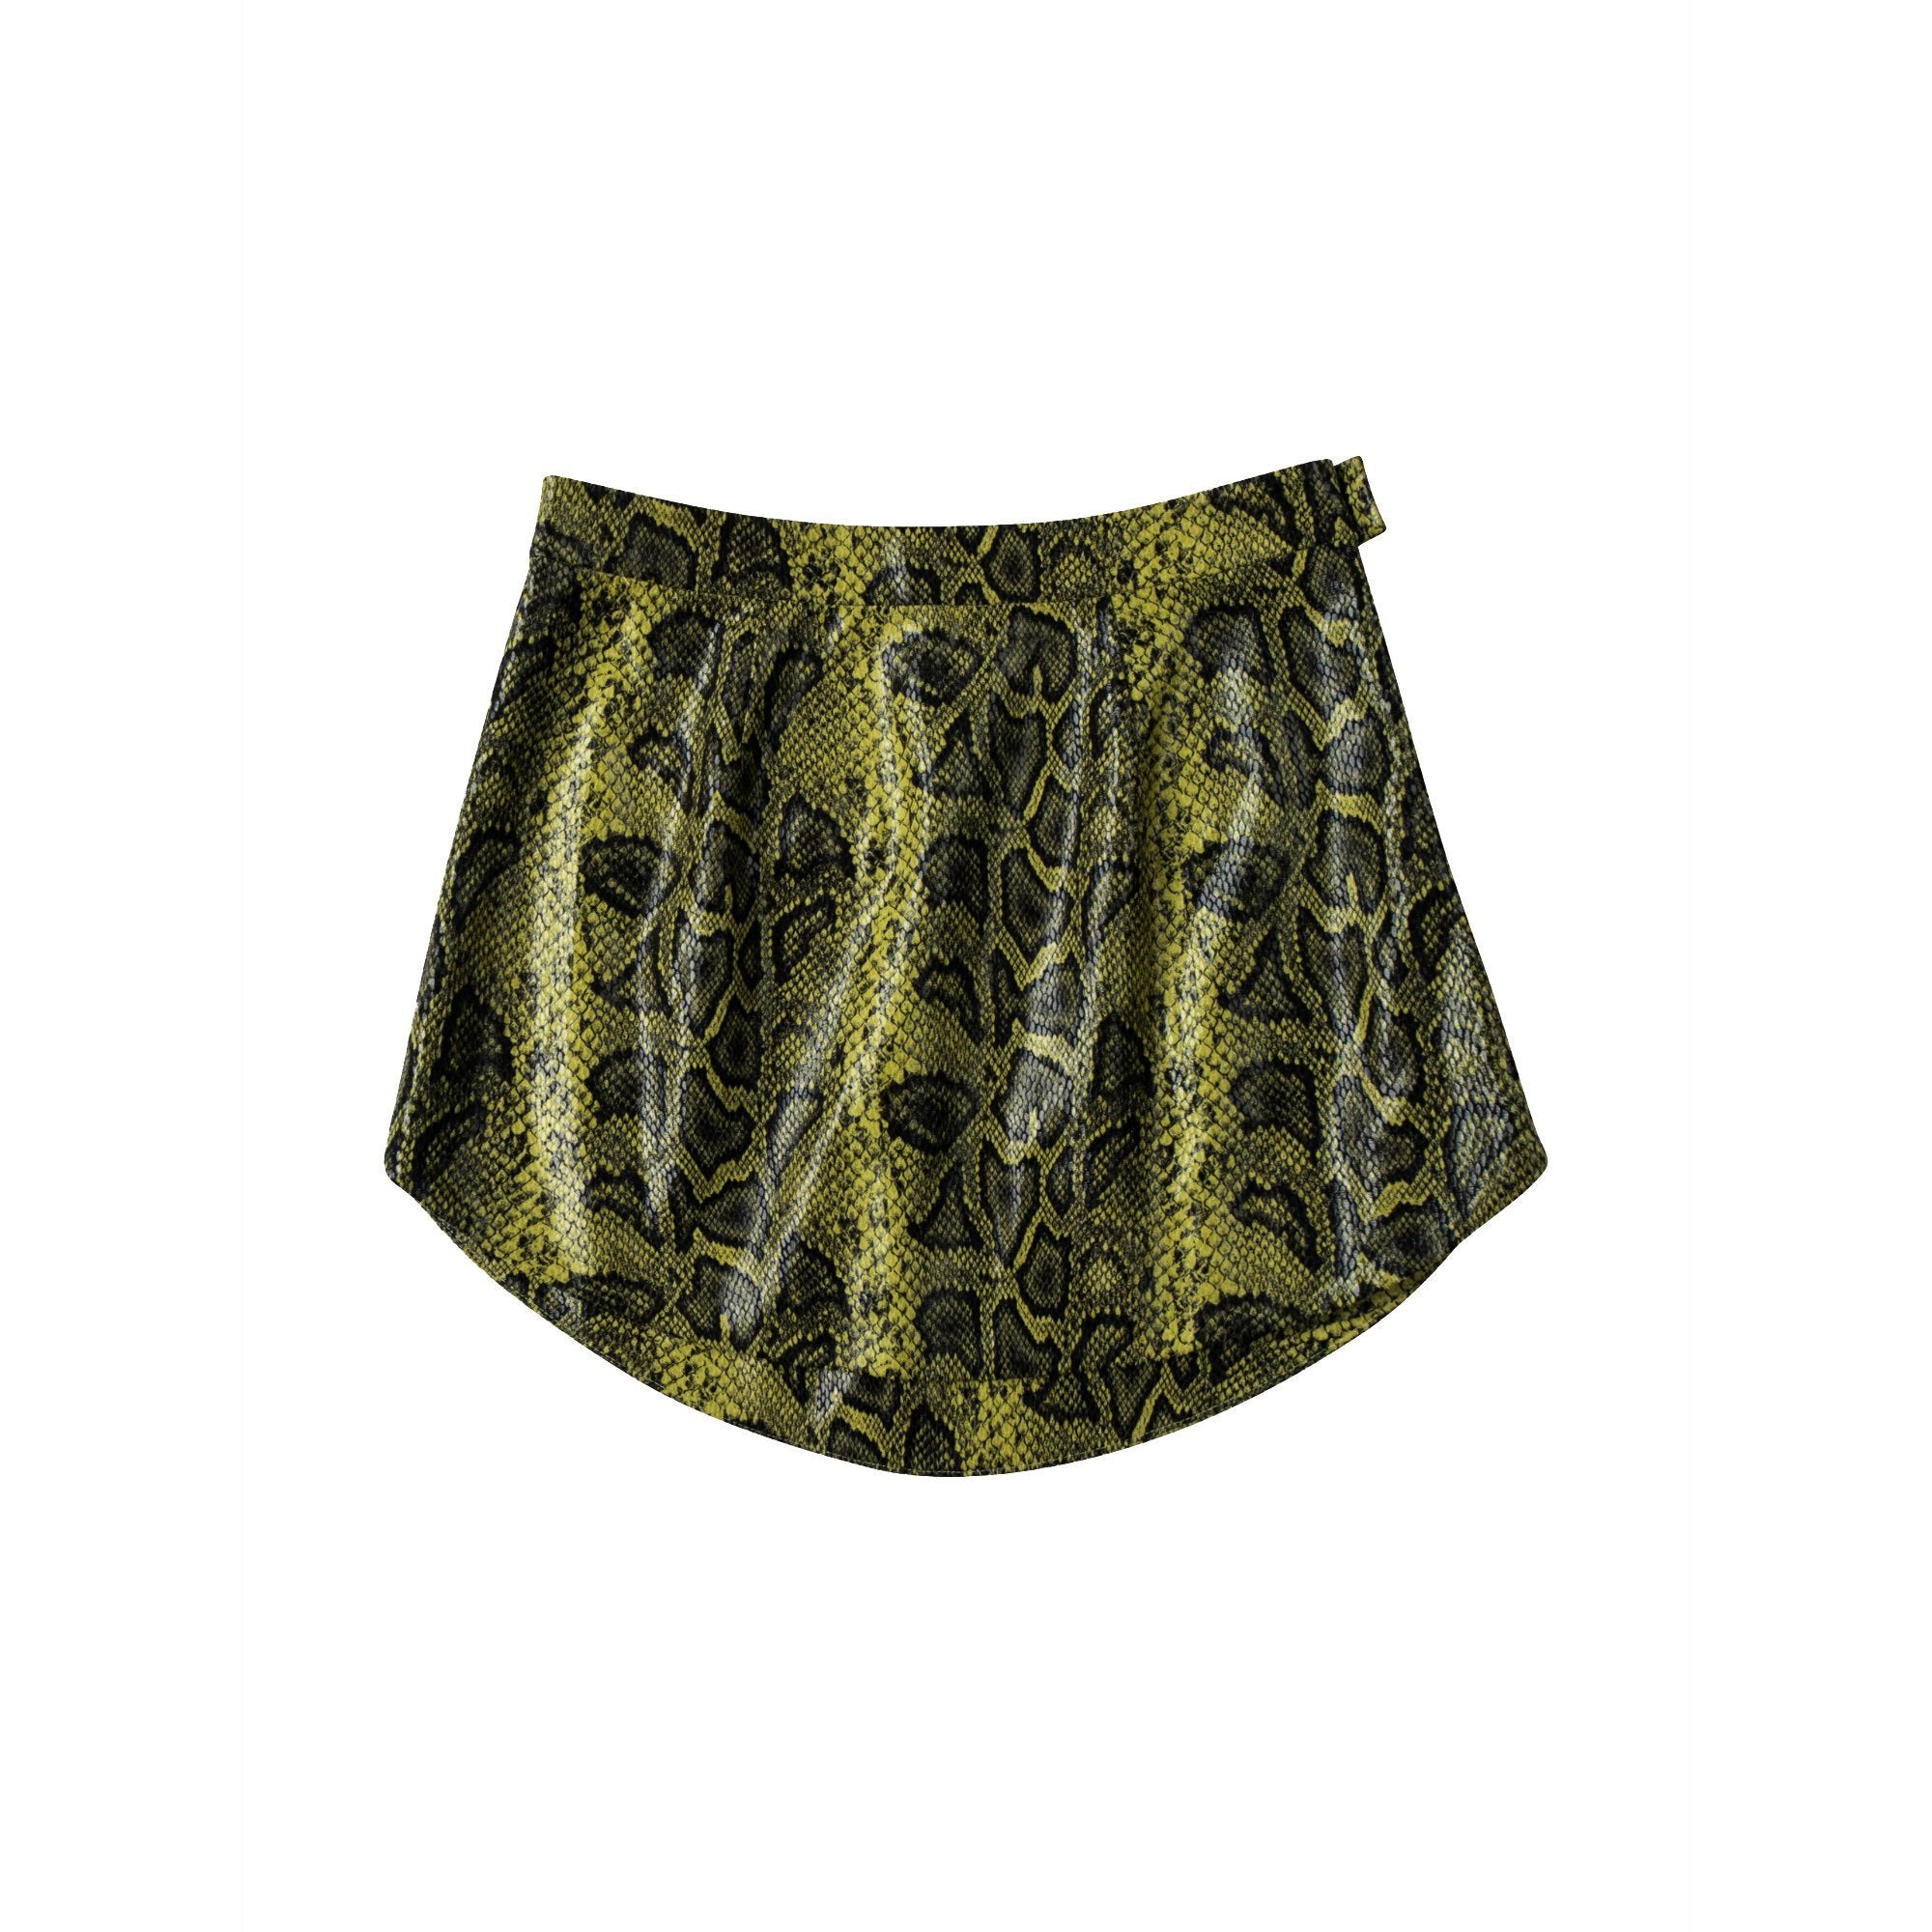 ANN ANDELMAN Yellow Serpentine Skirts | MADA IN CHINA